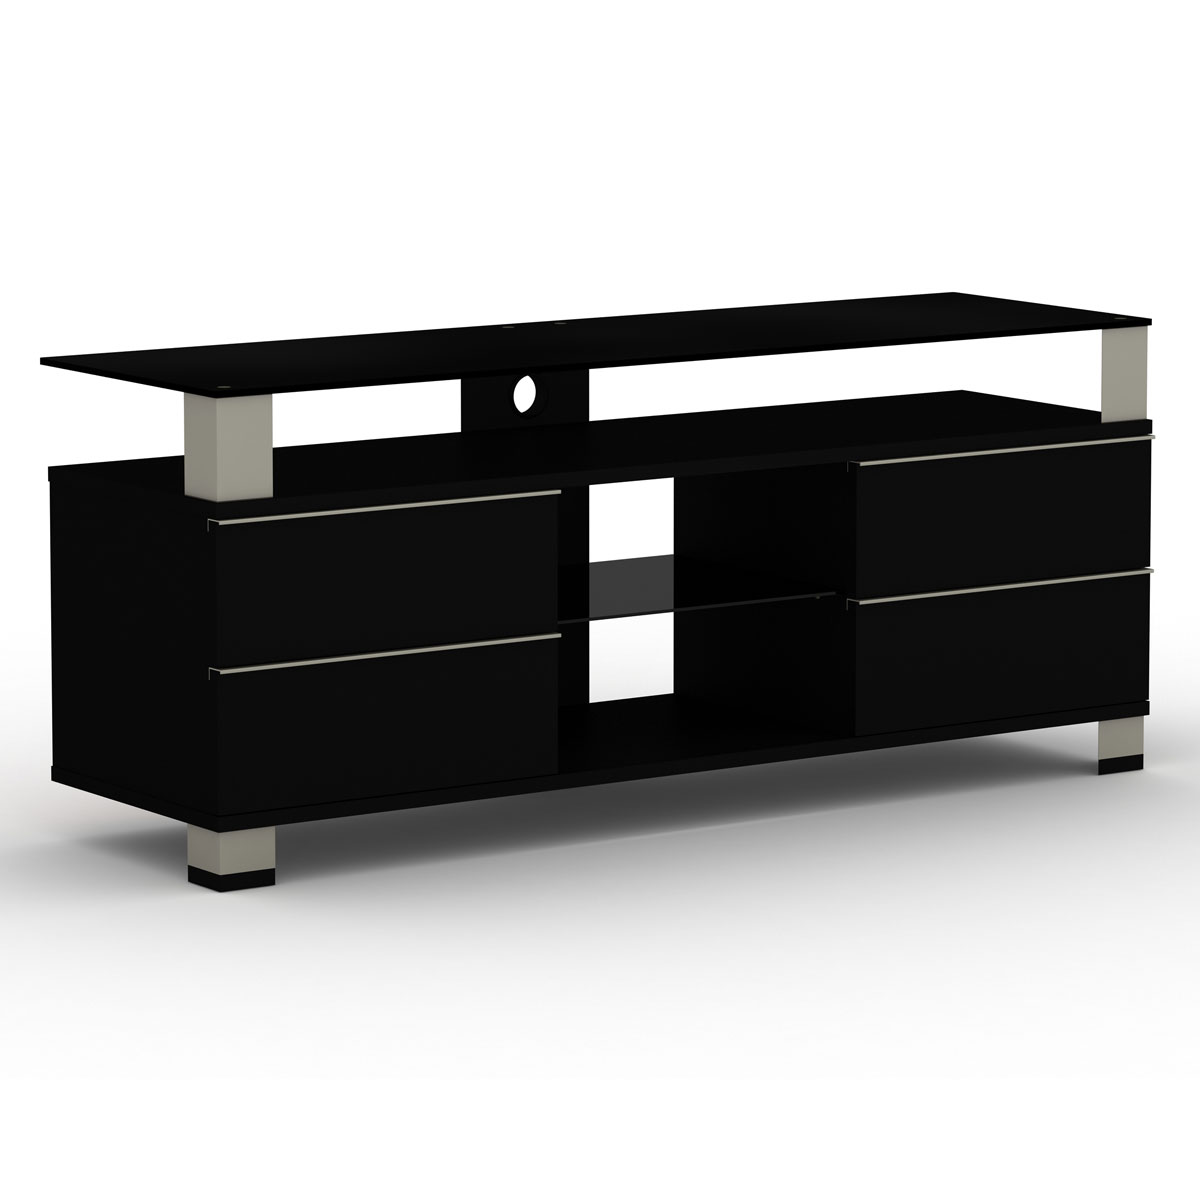 elmob pone pn 140 03 noir meuble tv elmob sur. Black Bedroom Furniture Sets. Home Design Ideas